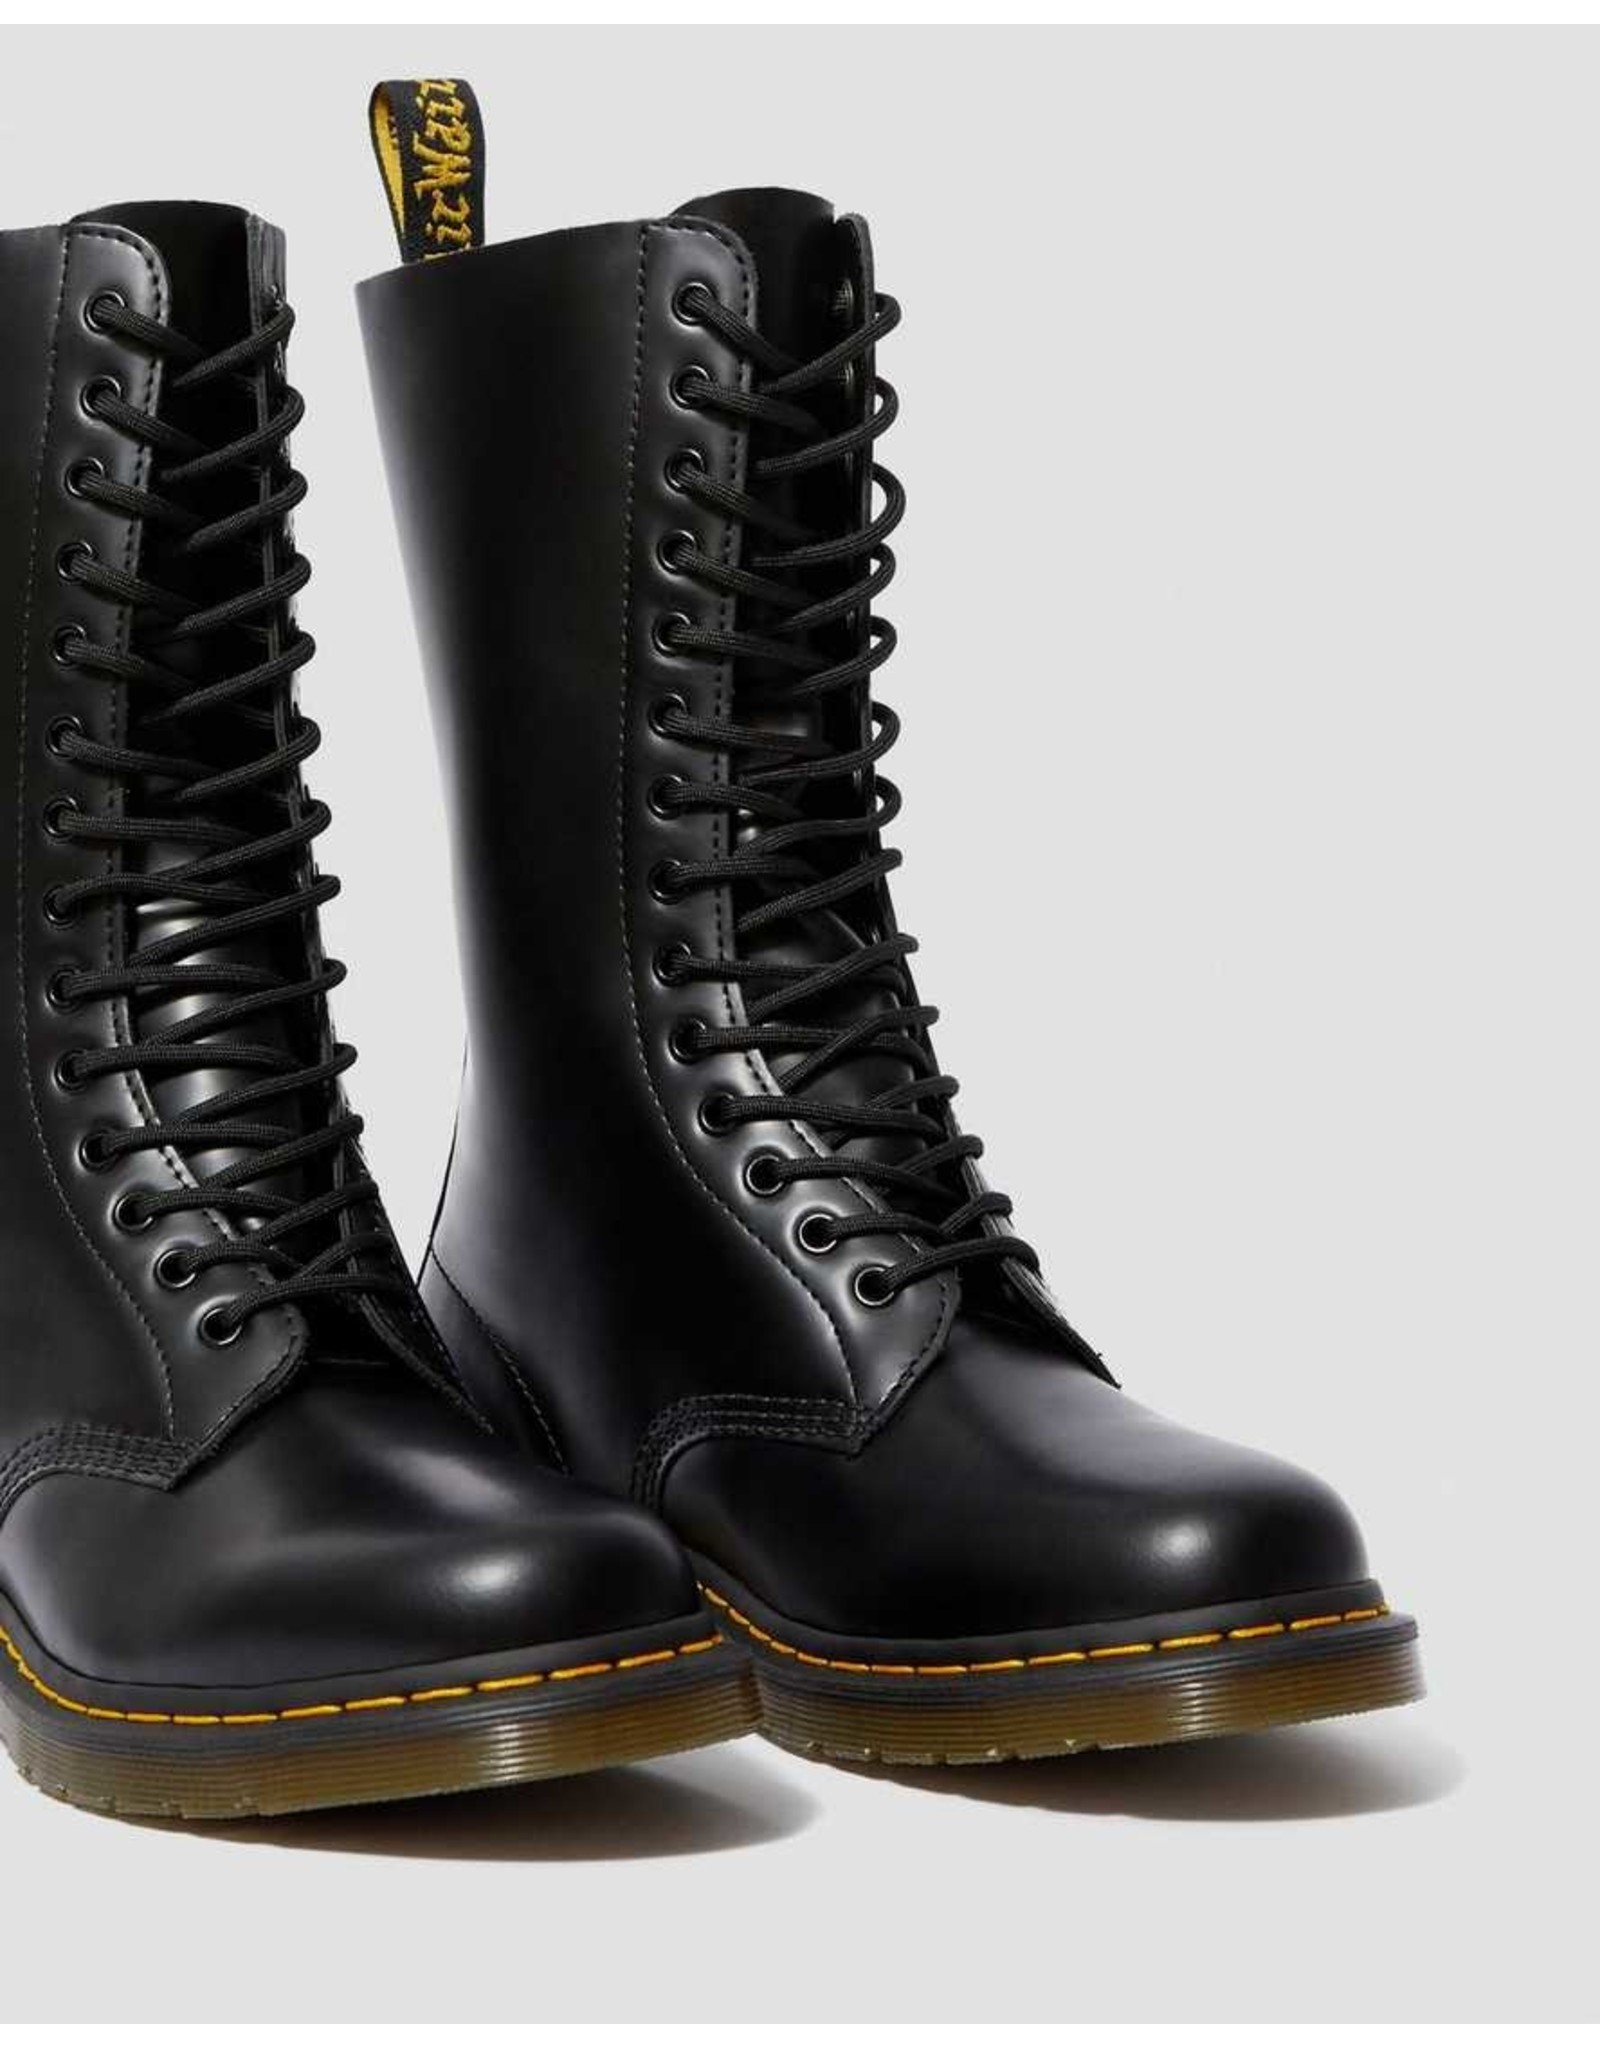 DR. MARTENS DR. MARTENS BLACK SMOOTH LEATHER TALL BOOTS